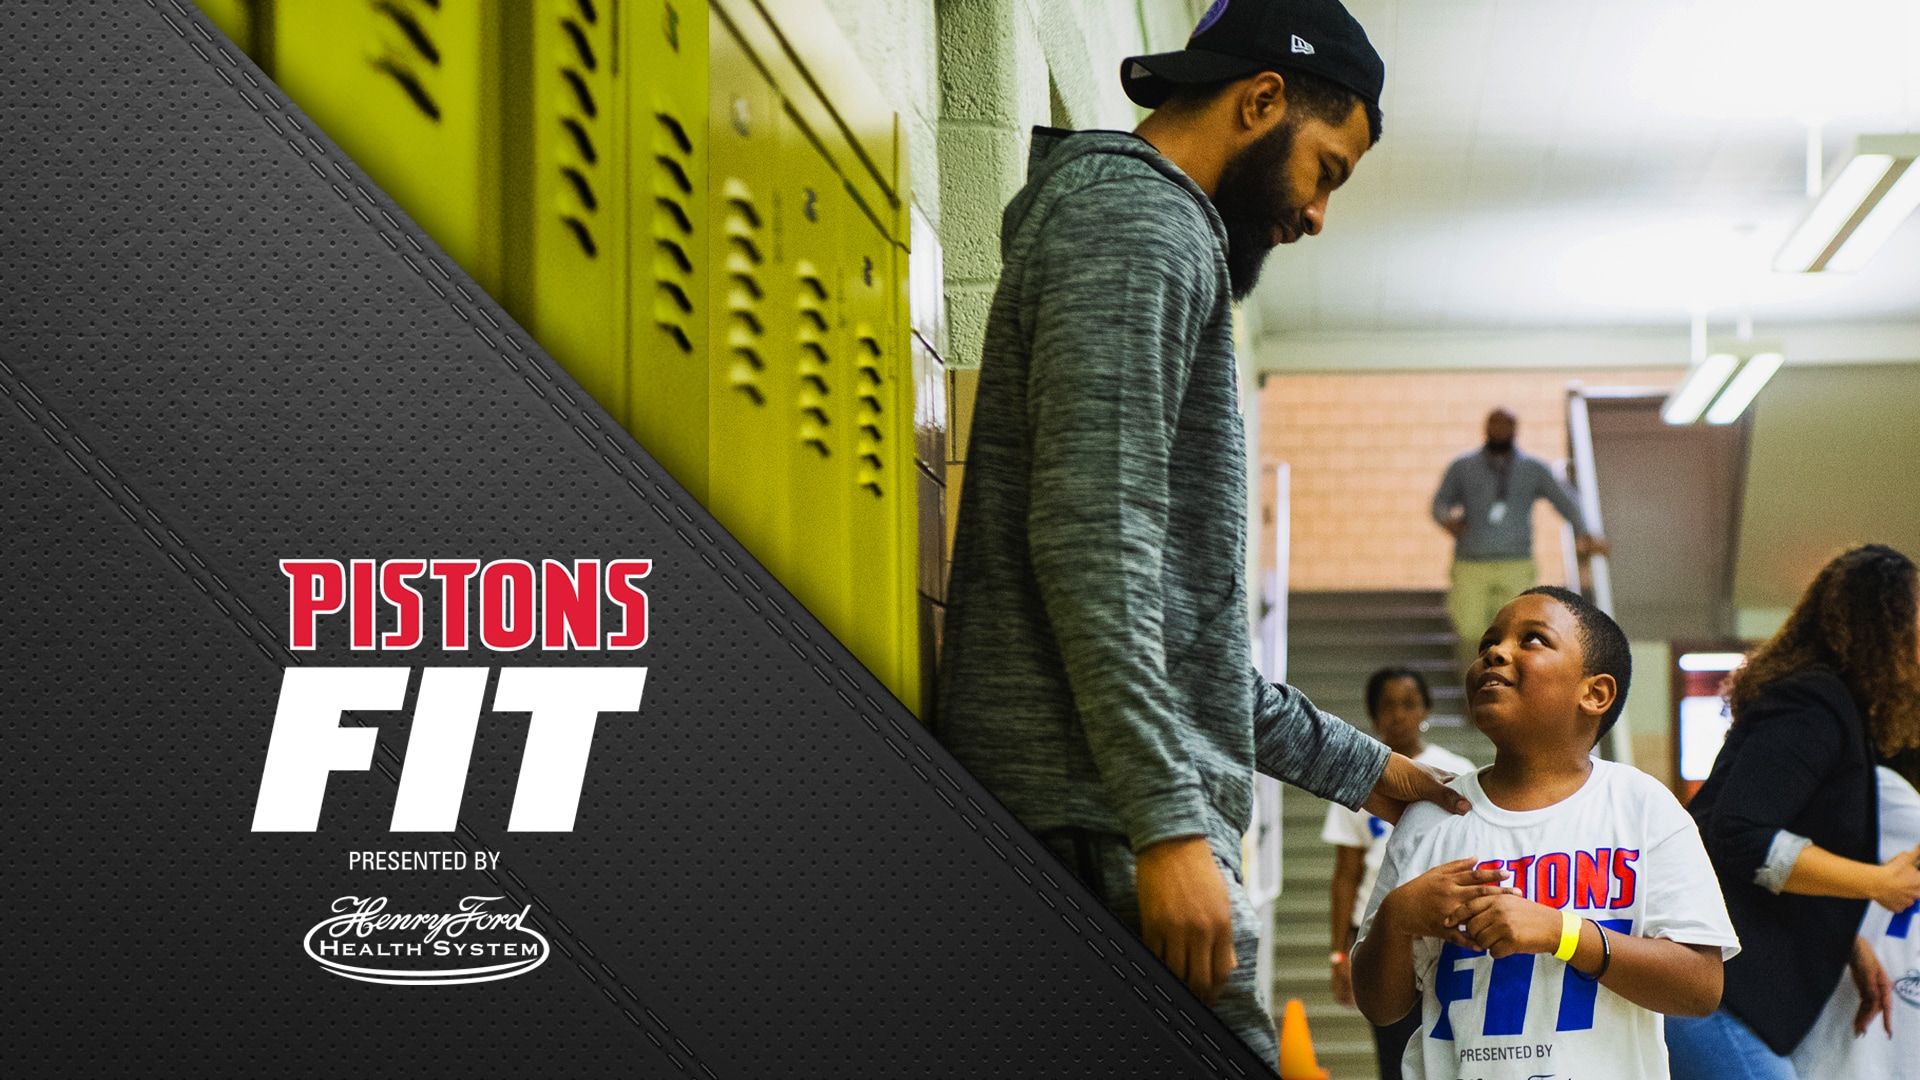 Pistons Fit, presented by Henry Ford Health System: UNICEF Kid Power Clinic